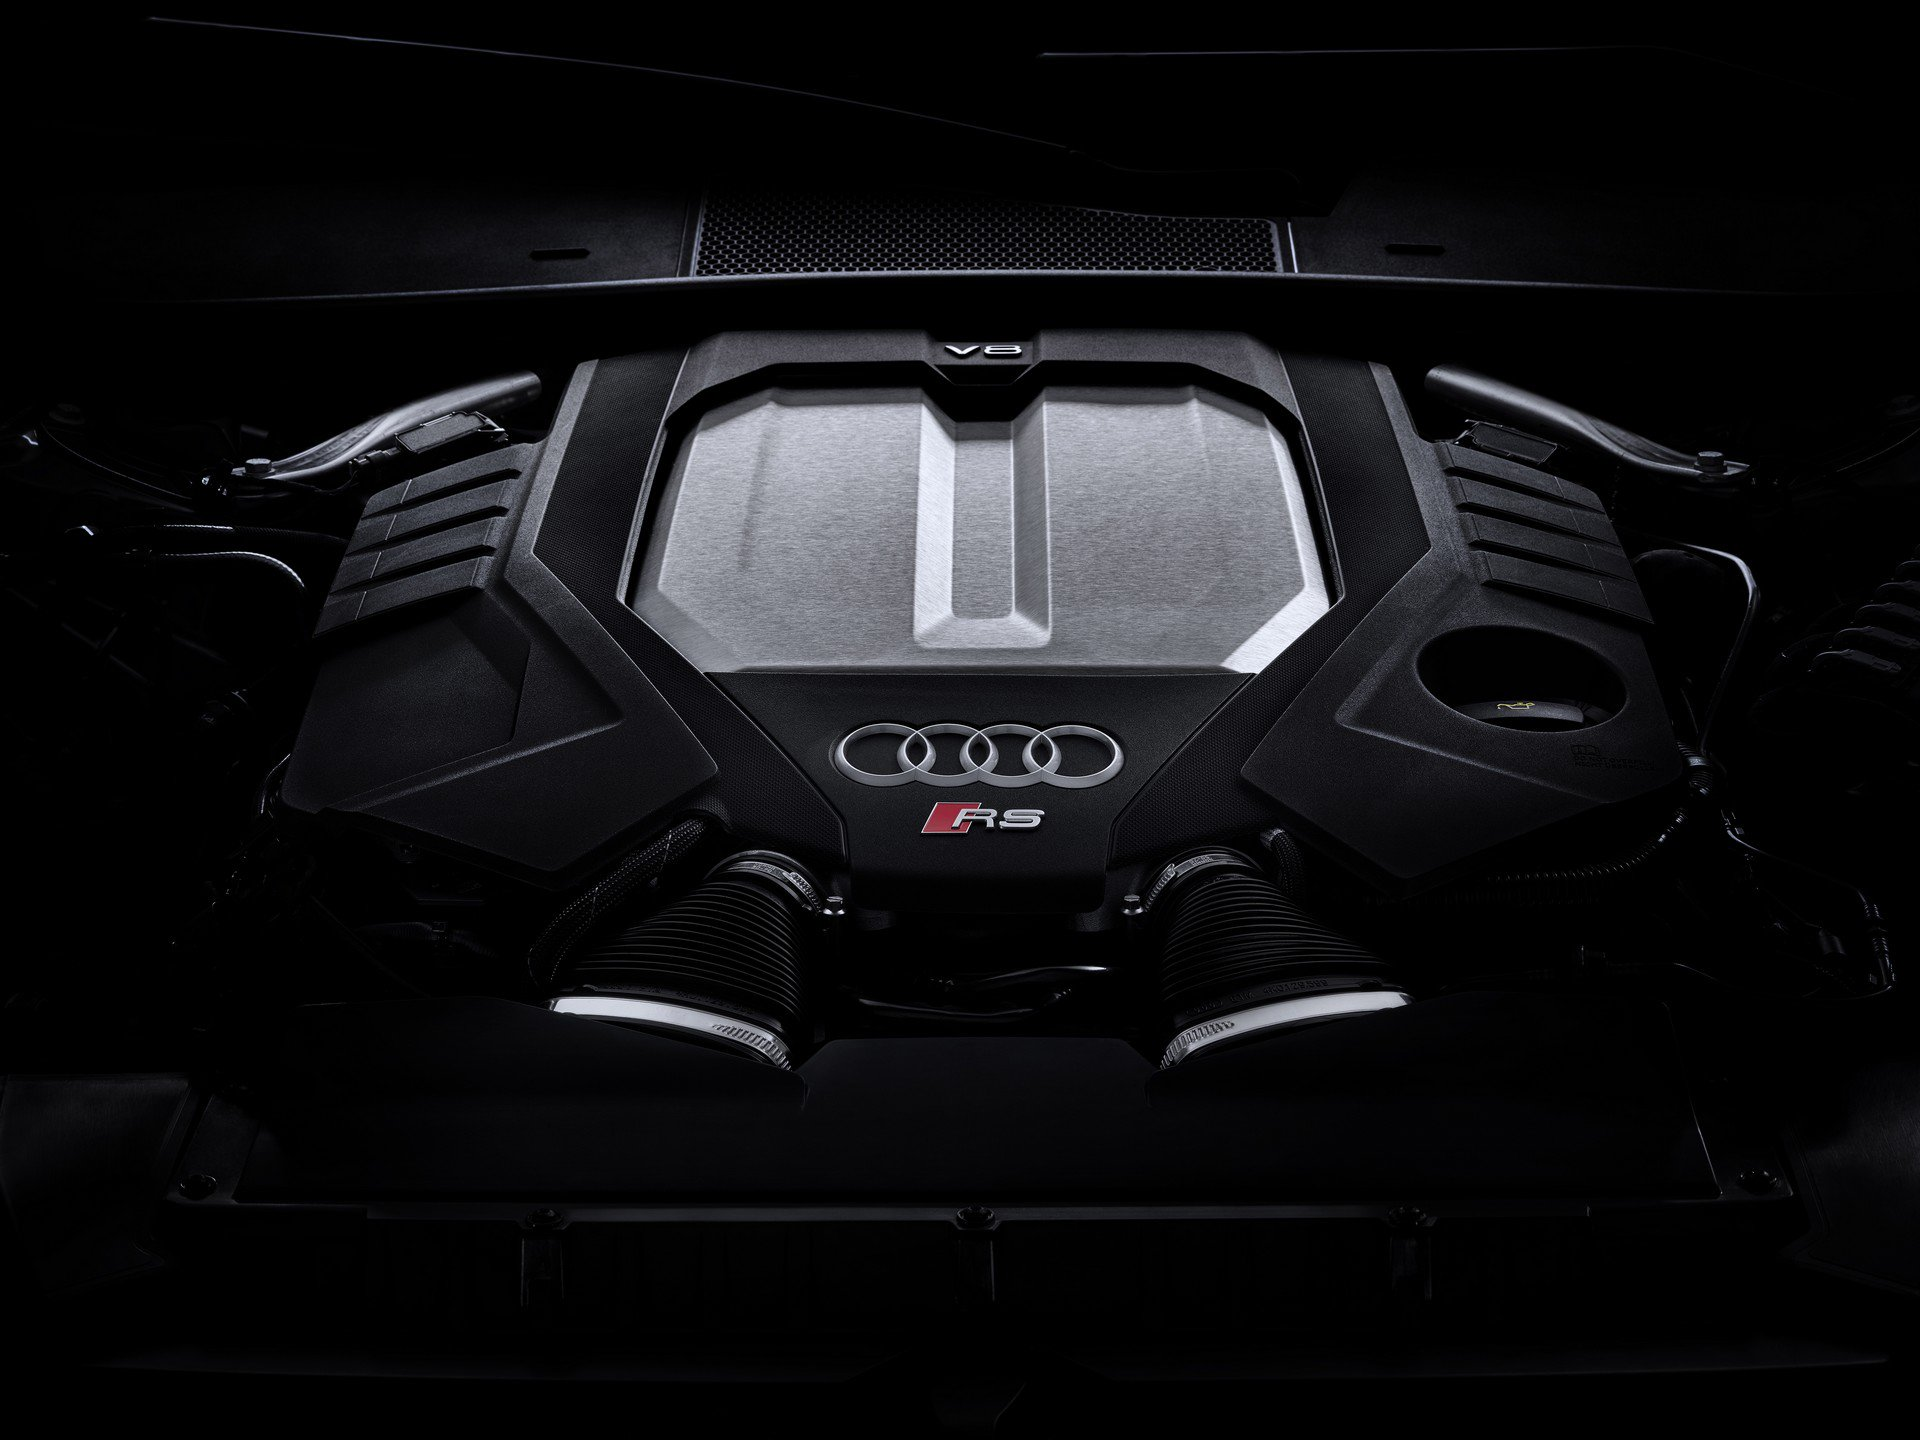 ad4bed98-2020-audi-rs-6-avant-16